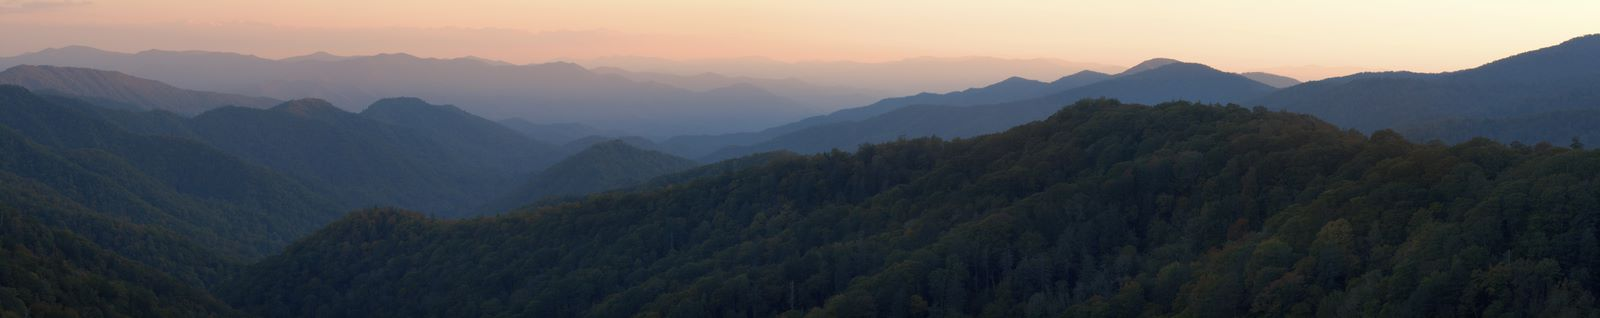 The Appalachian Prosperity Project Presents: Profiles in Partnership